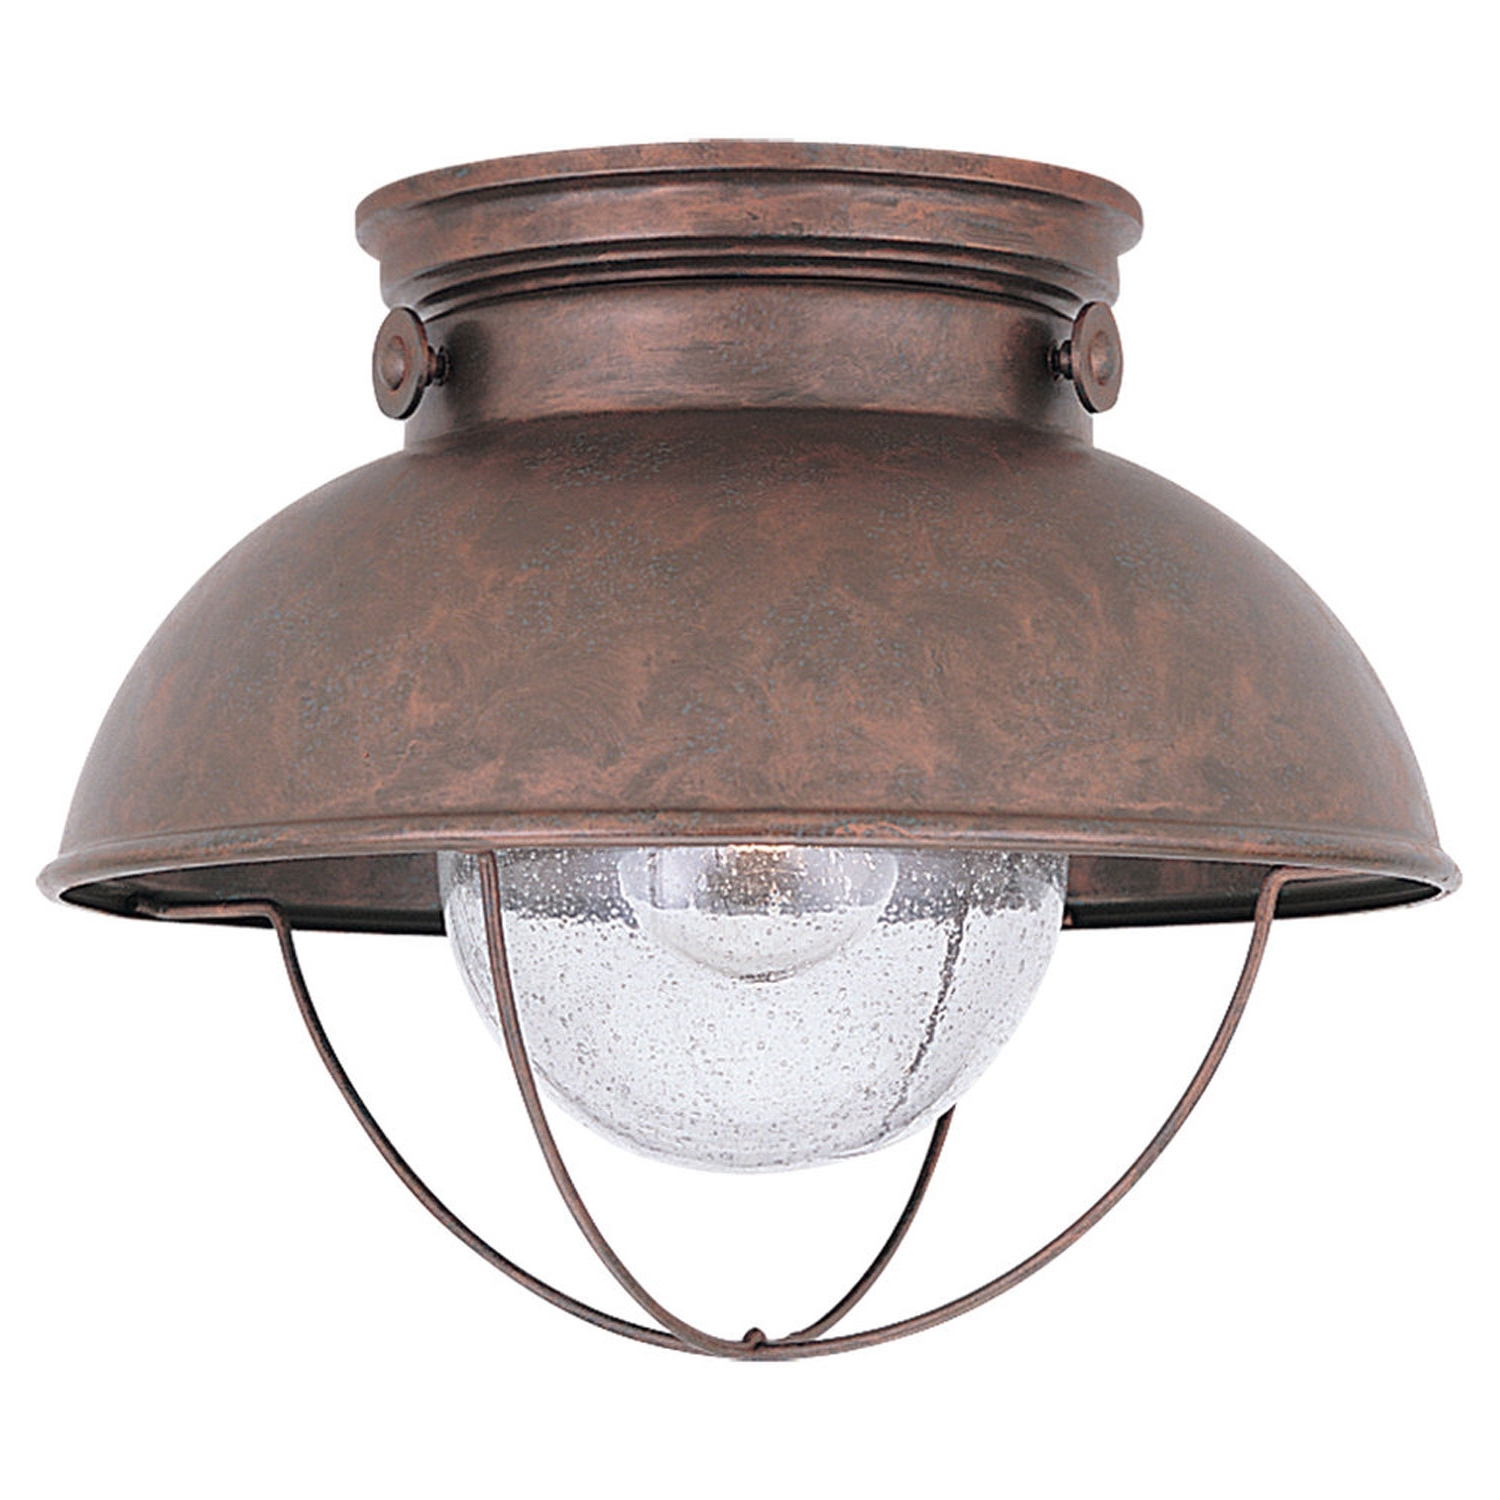 Sea Gull Lighting Sebring Weathered Copper Outdoor Ceiling Light On Sale Regarding Best And Newest Cheap Outdoor Ceiling Lights (View 6 of 20)